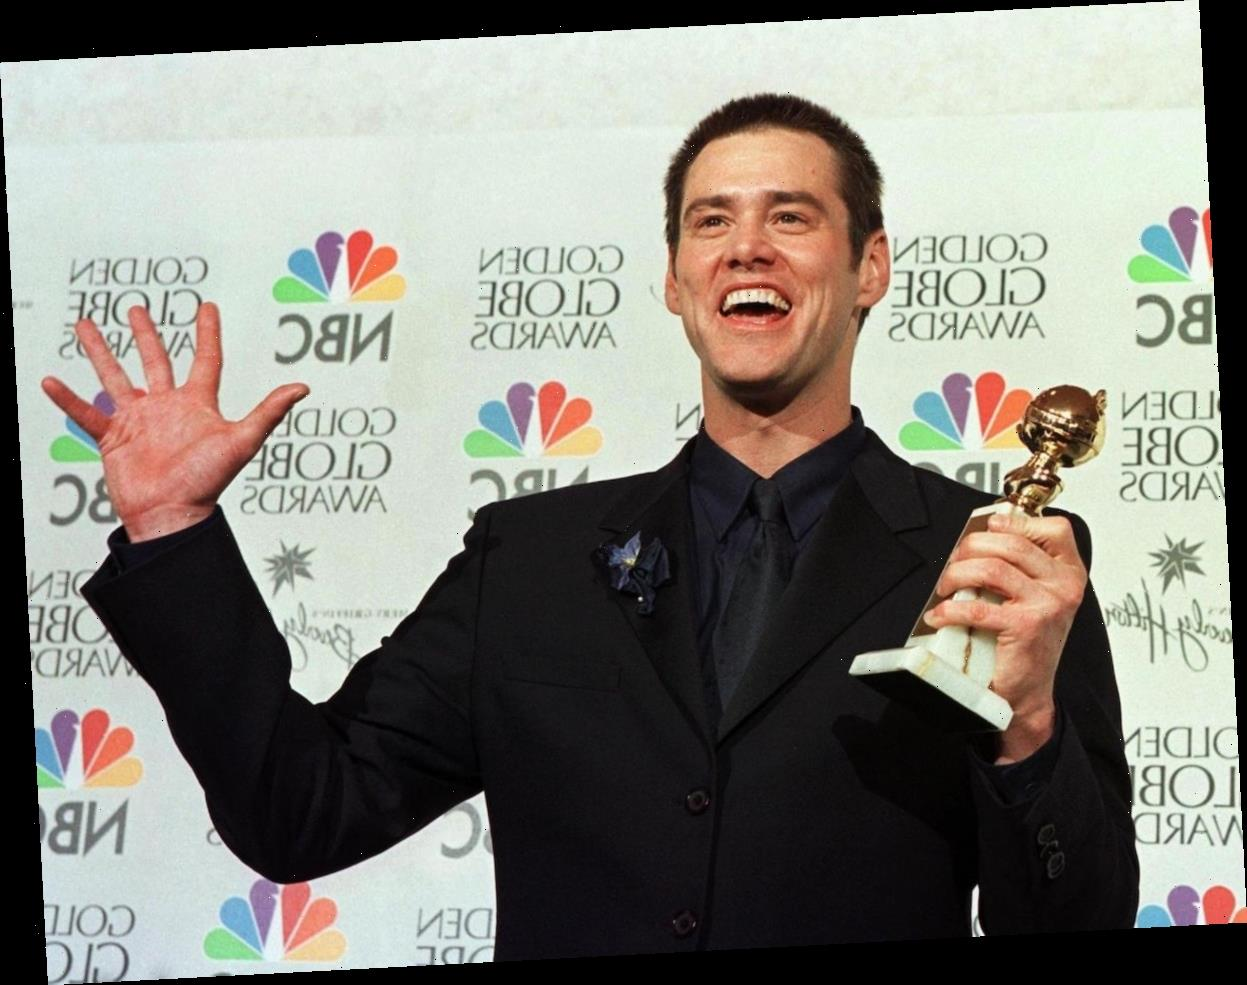 Jim Carrey Won Back-to-Back Golden Globes in the Wrong Categories